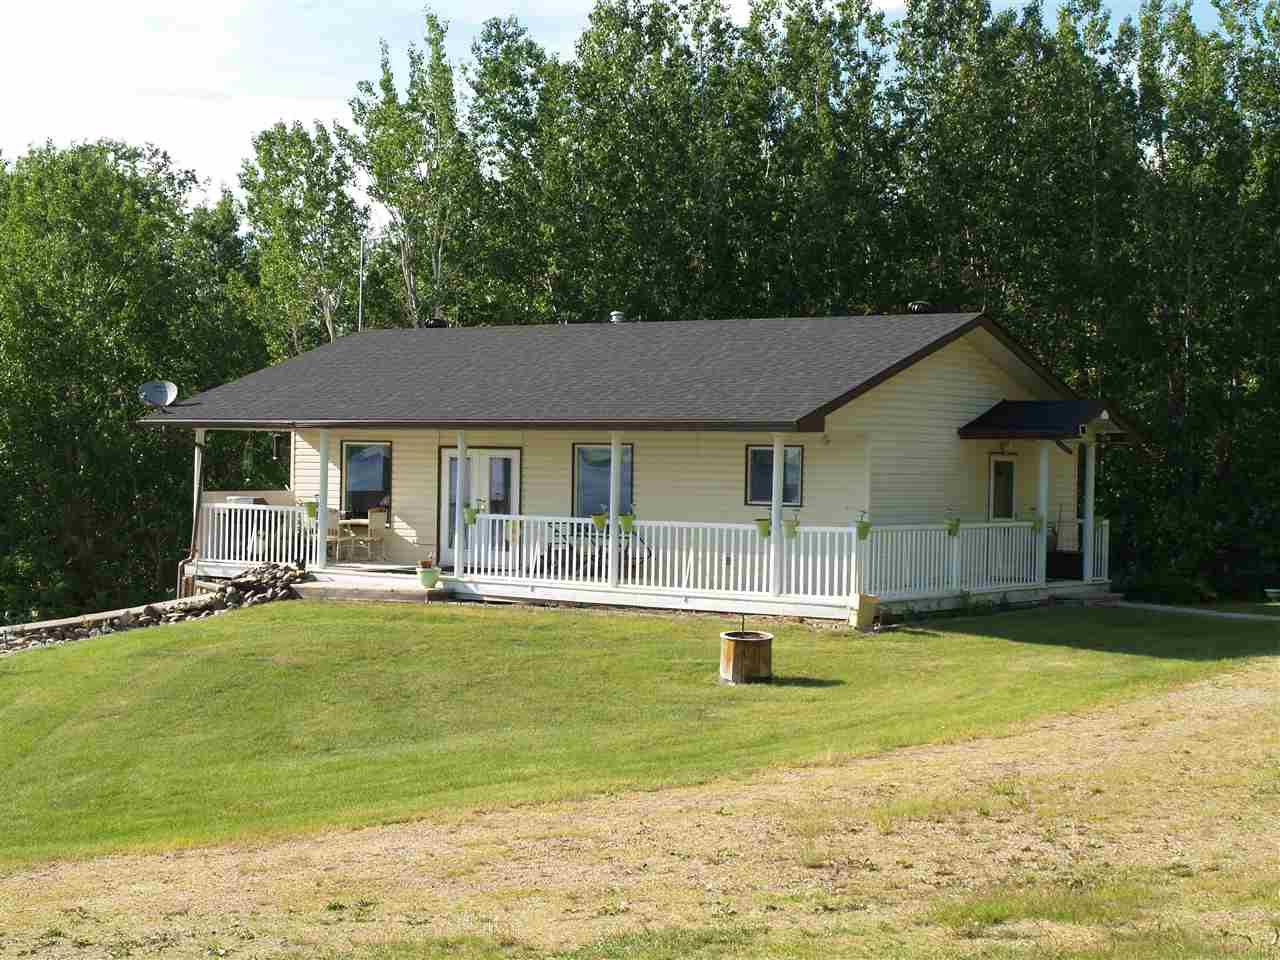 Main Photo: 60312 RR 164: Rural Smoky Lake County House for sale : MLS®# E4150497